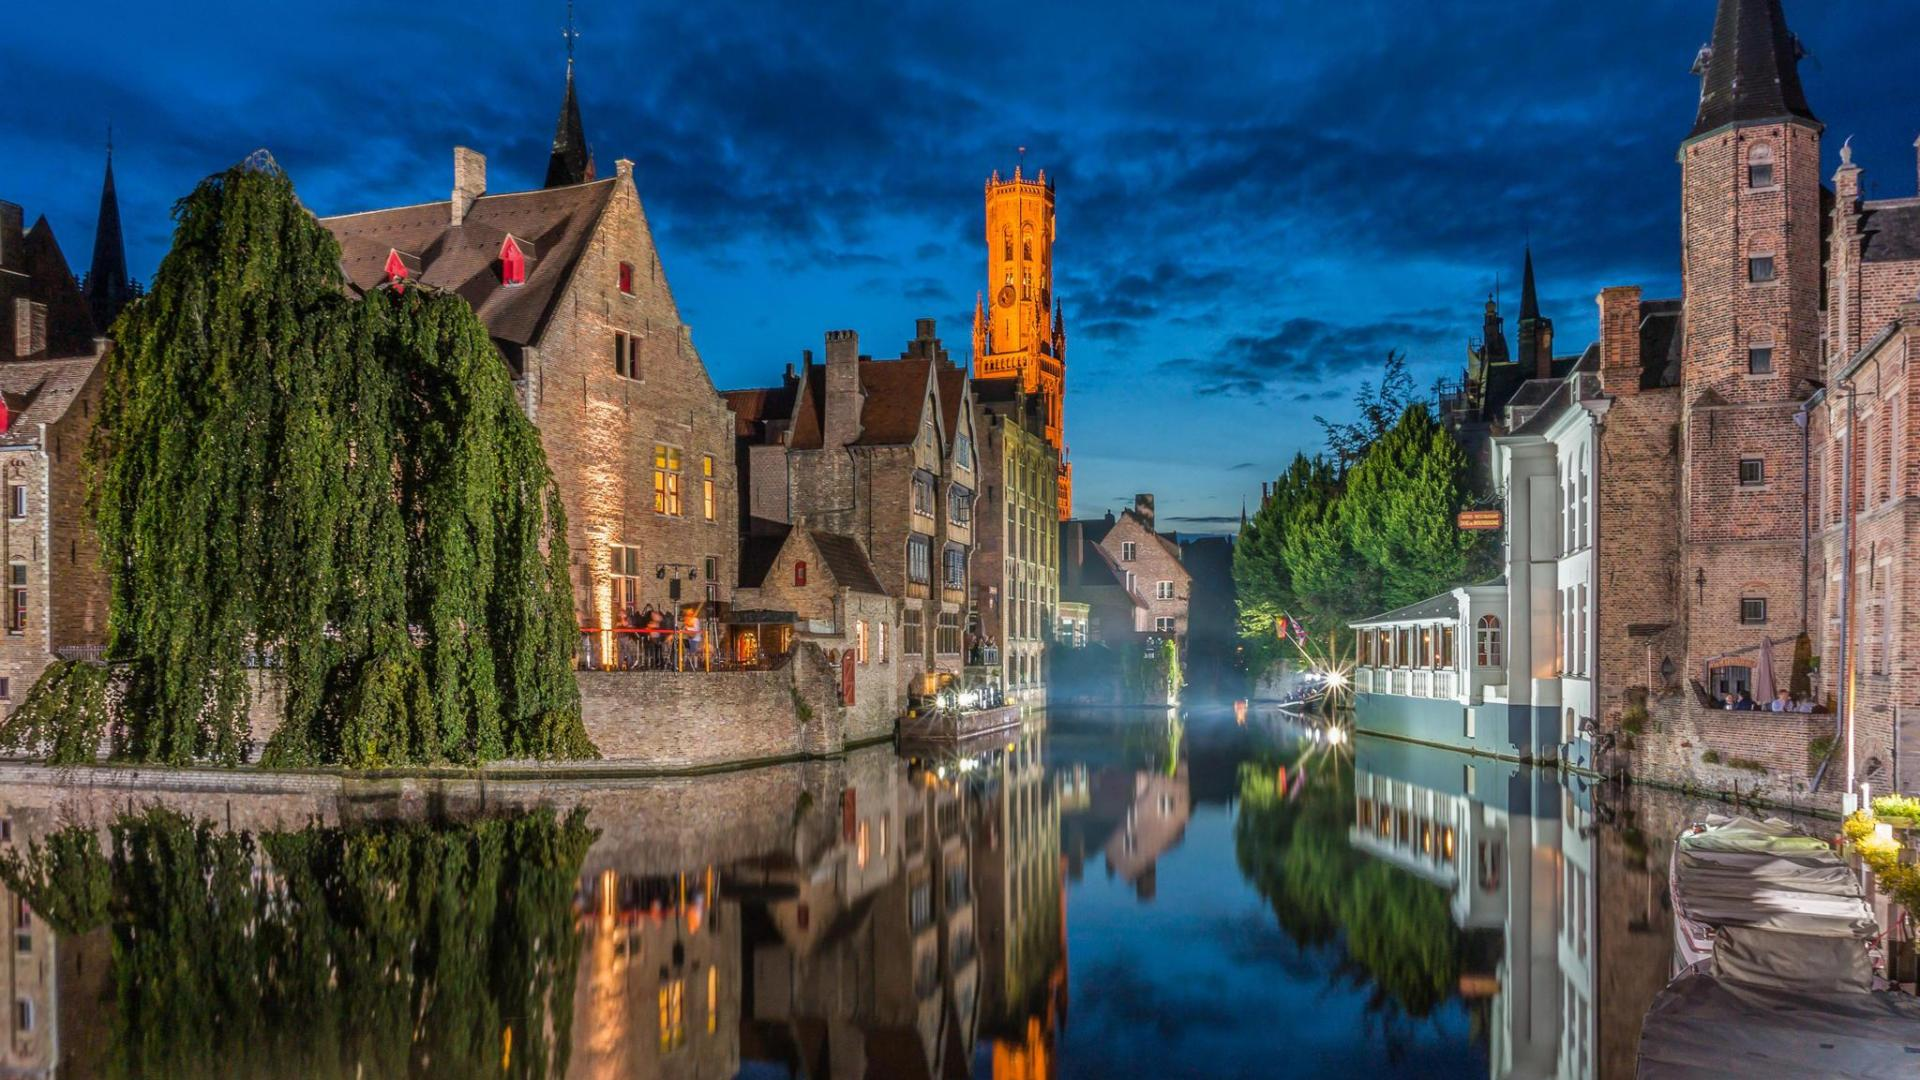 Bruges Wallpapers 36 images   DodoWallpaper 1920x1080